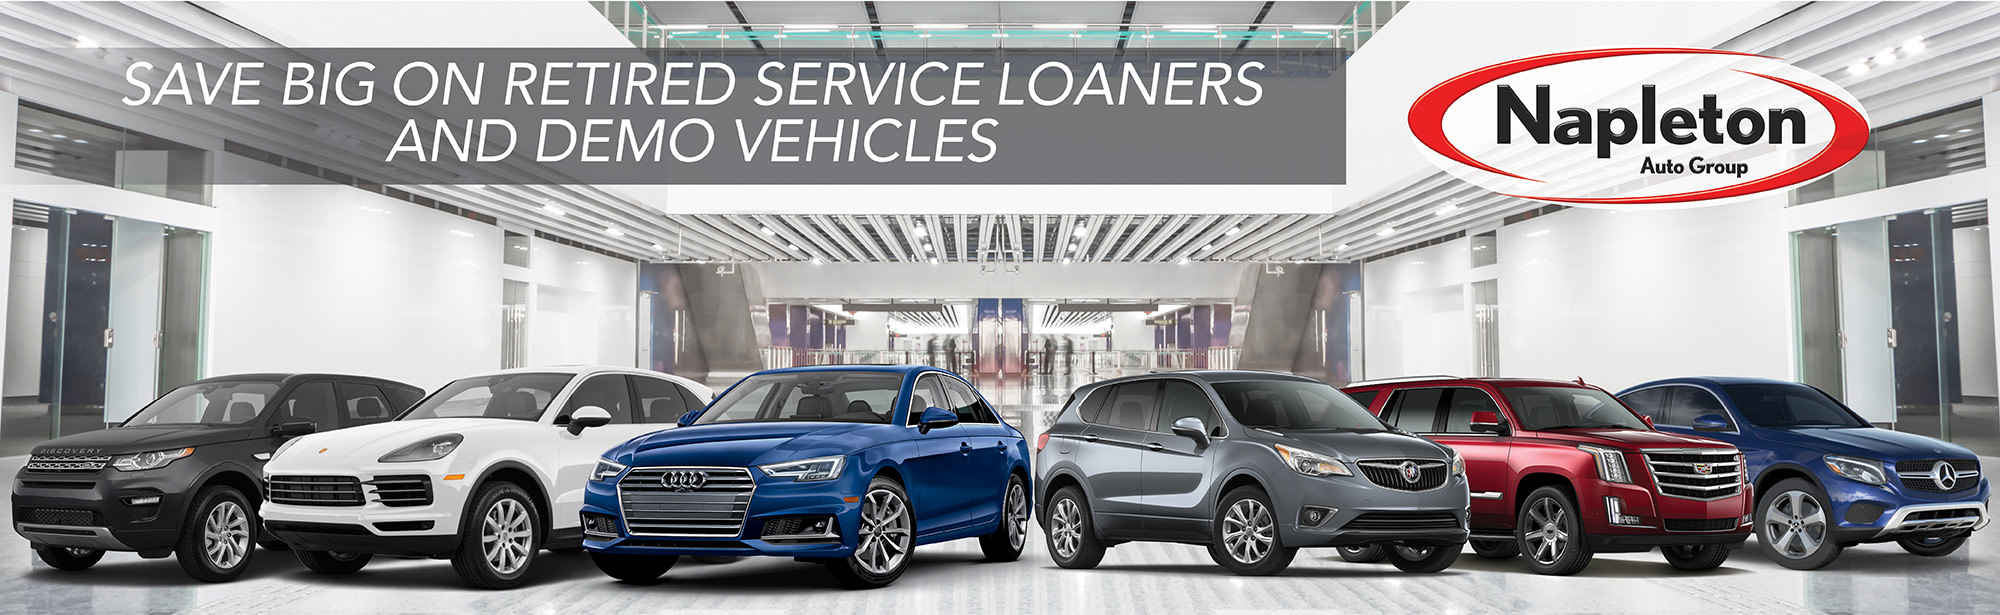 Save Big on Retired Service Loaners and Demo Vehicles